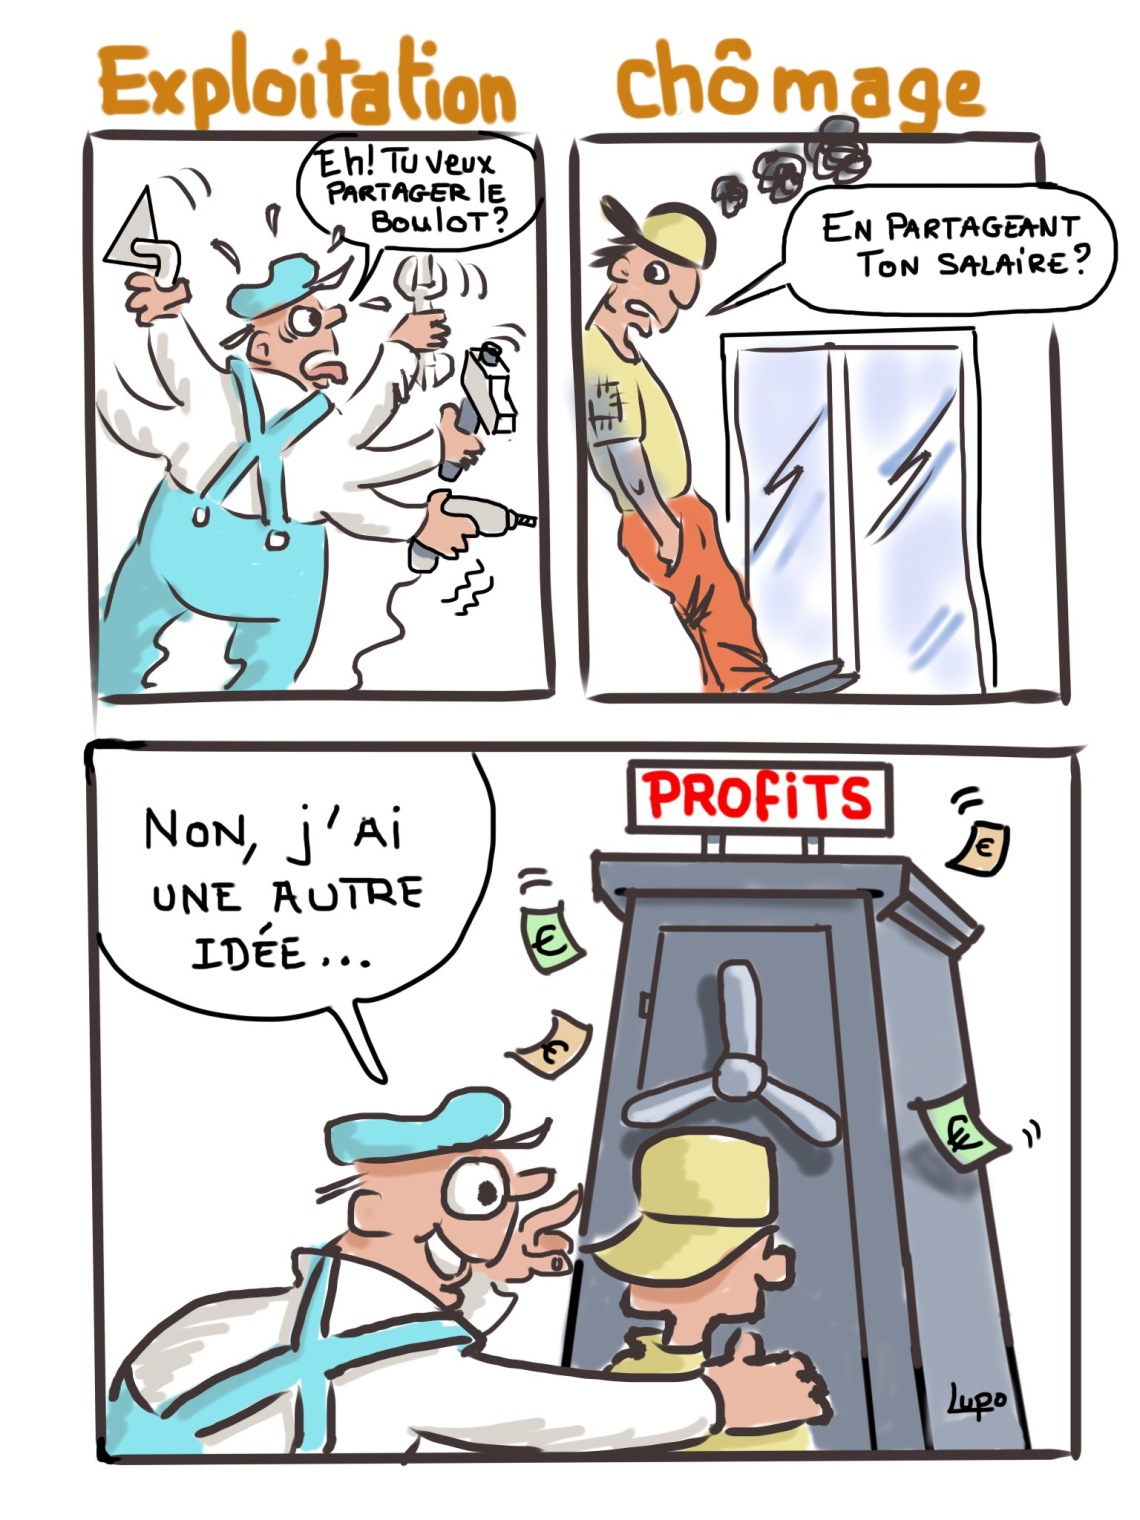 Illustration_sans_titre-205.jpg